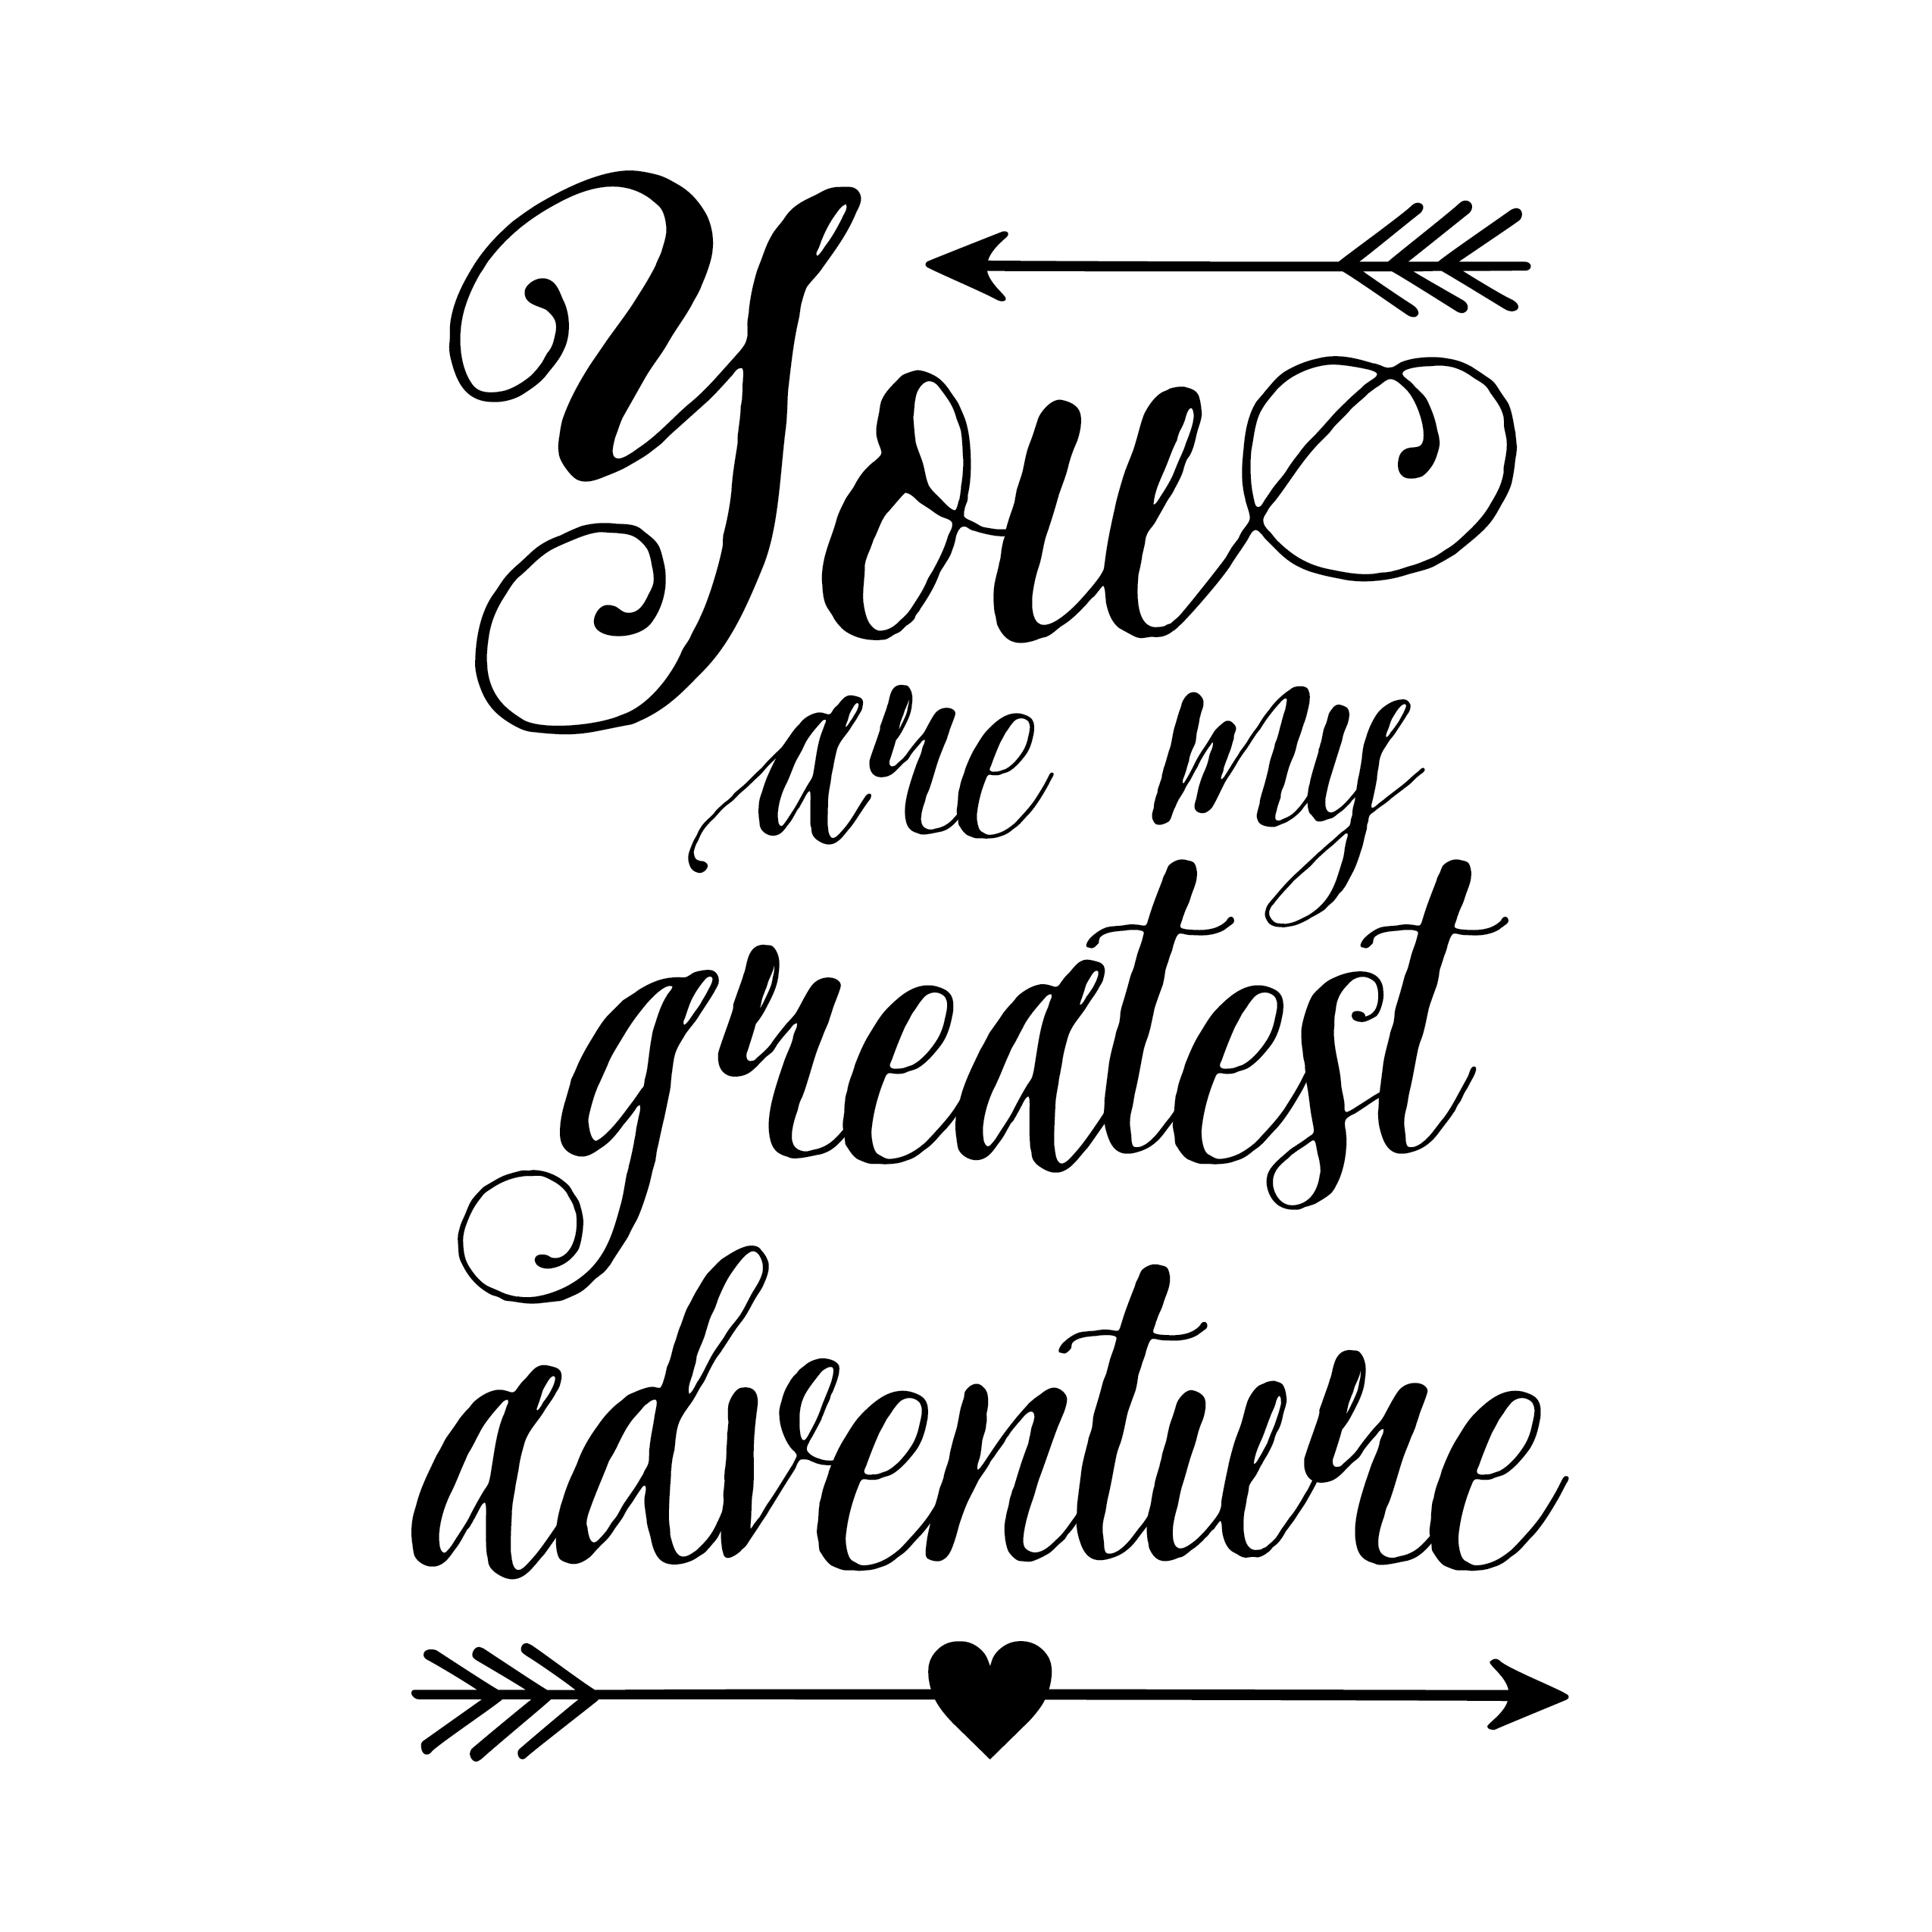 You Are My Greatest Adventure Vinyl Wall Decal From Wild